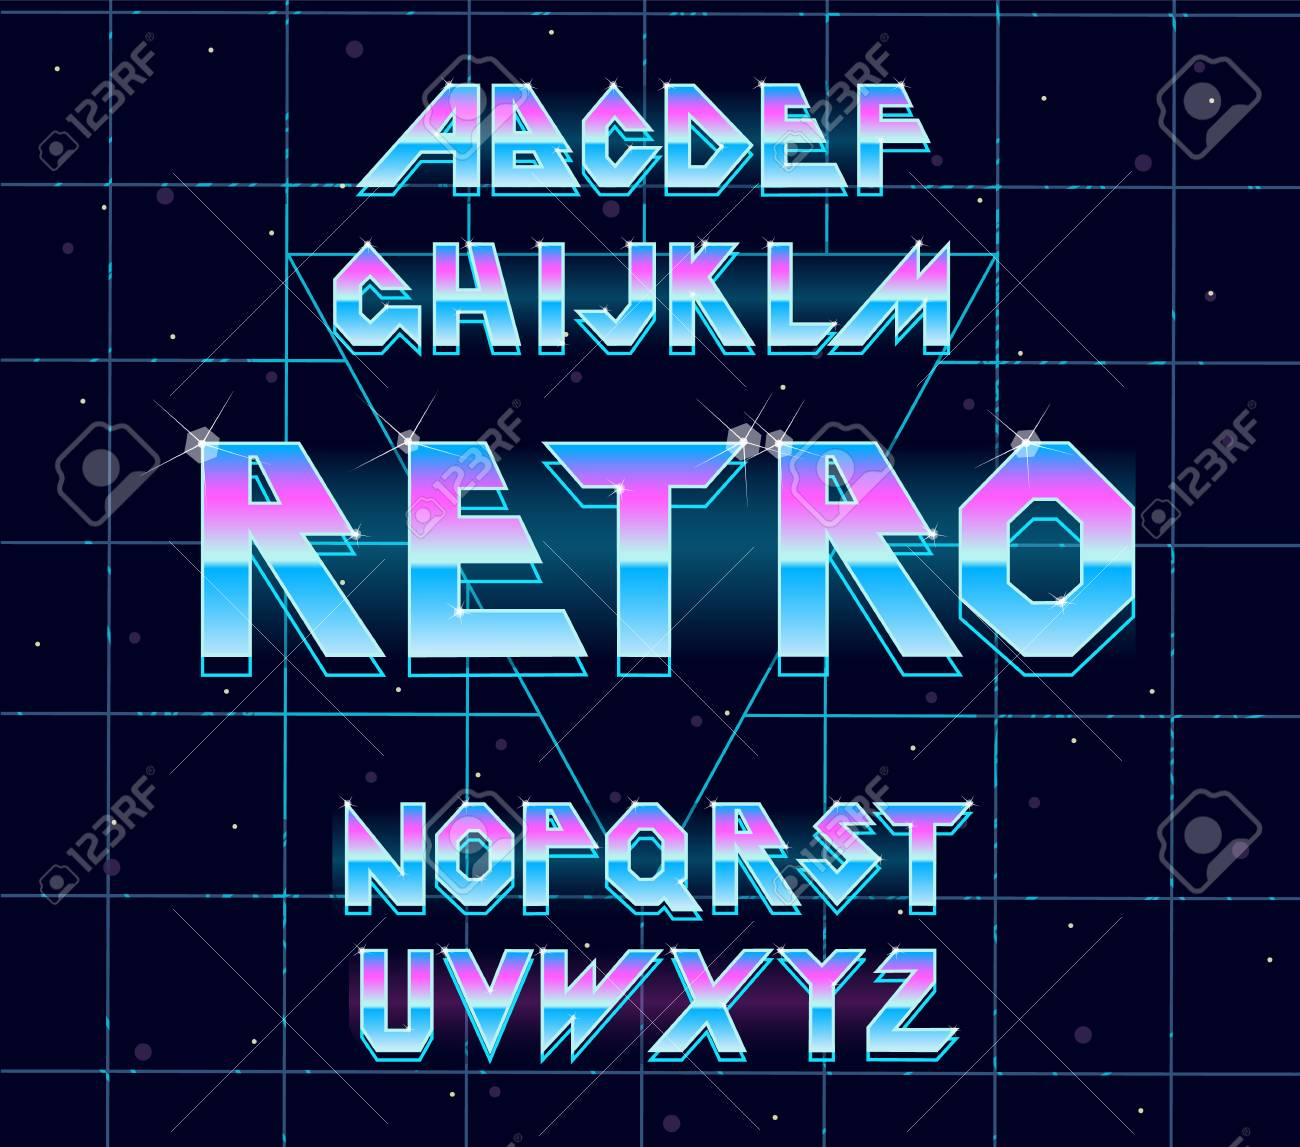 Alphabet 80 s retro font Vector typography for flyers, posters